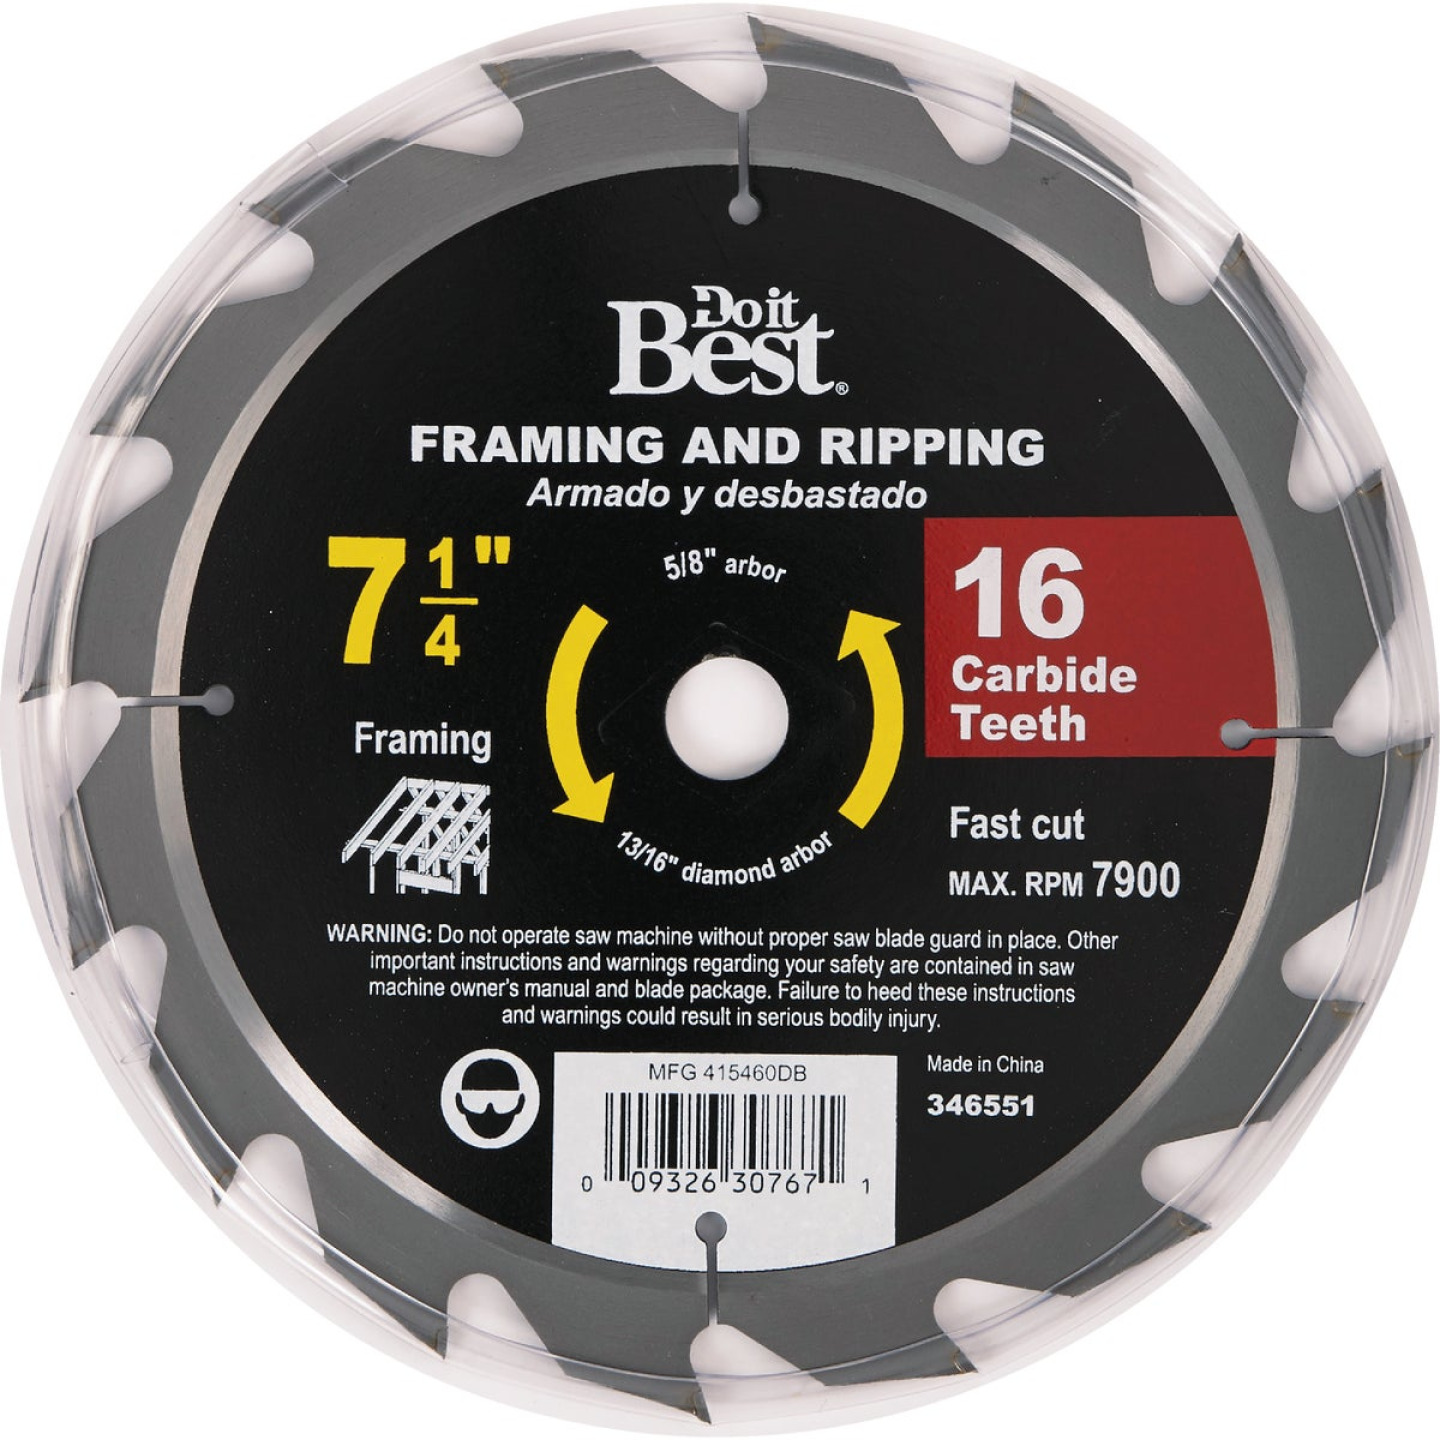 Do it Best 7-1/4 In. 16-Tooth Framing & Ripping Circular Saw Blade, Bulk Image 2